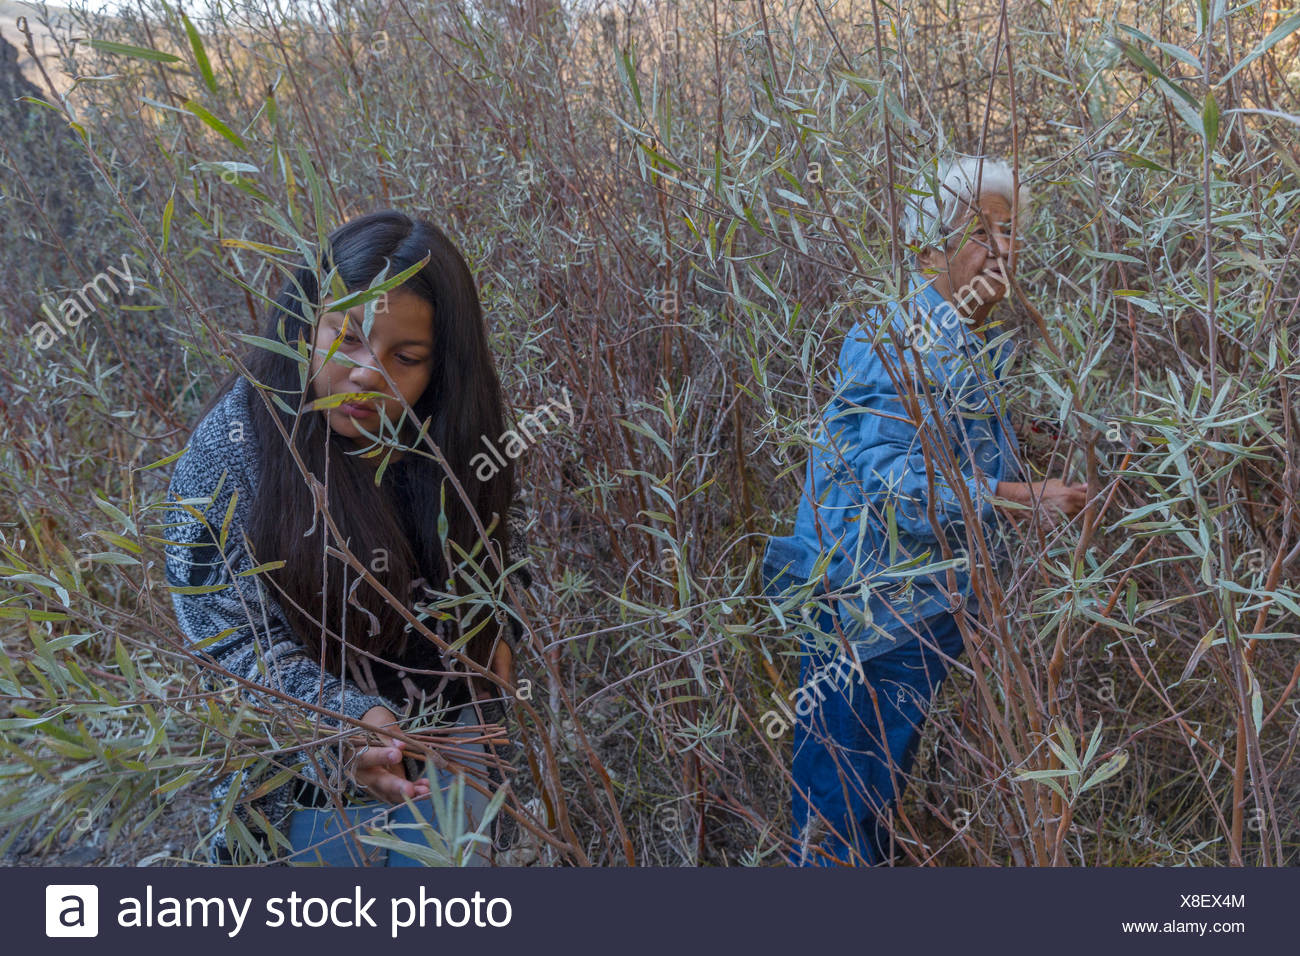 two female members of Federated Indians of Graton Rancheria collect gray willow for basket making at Tolay Creek,California,USA - Stock Image